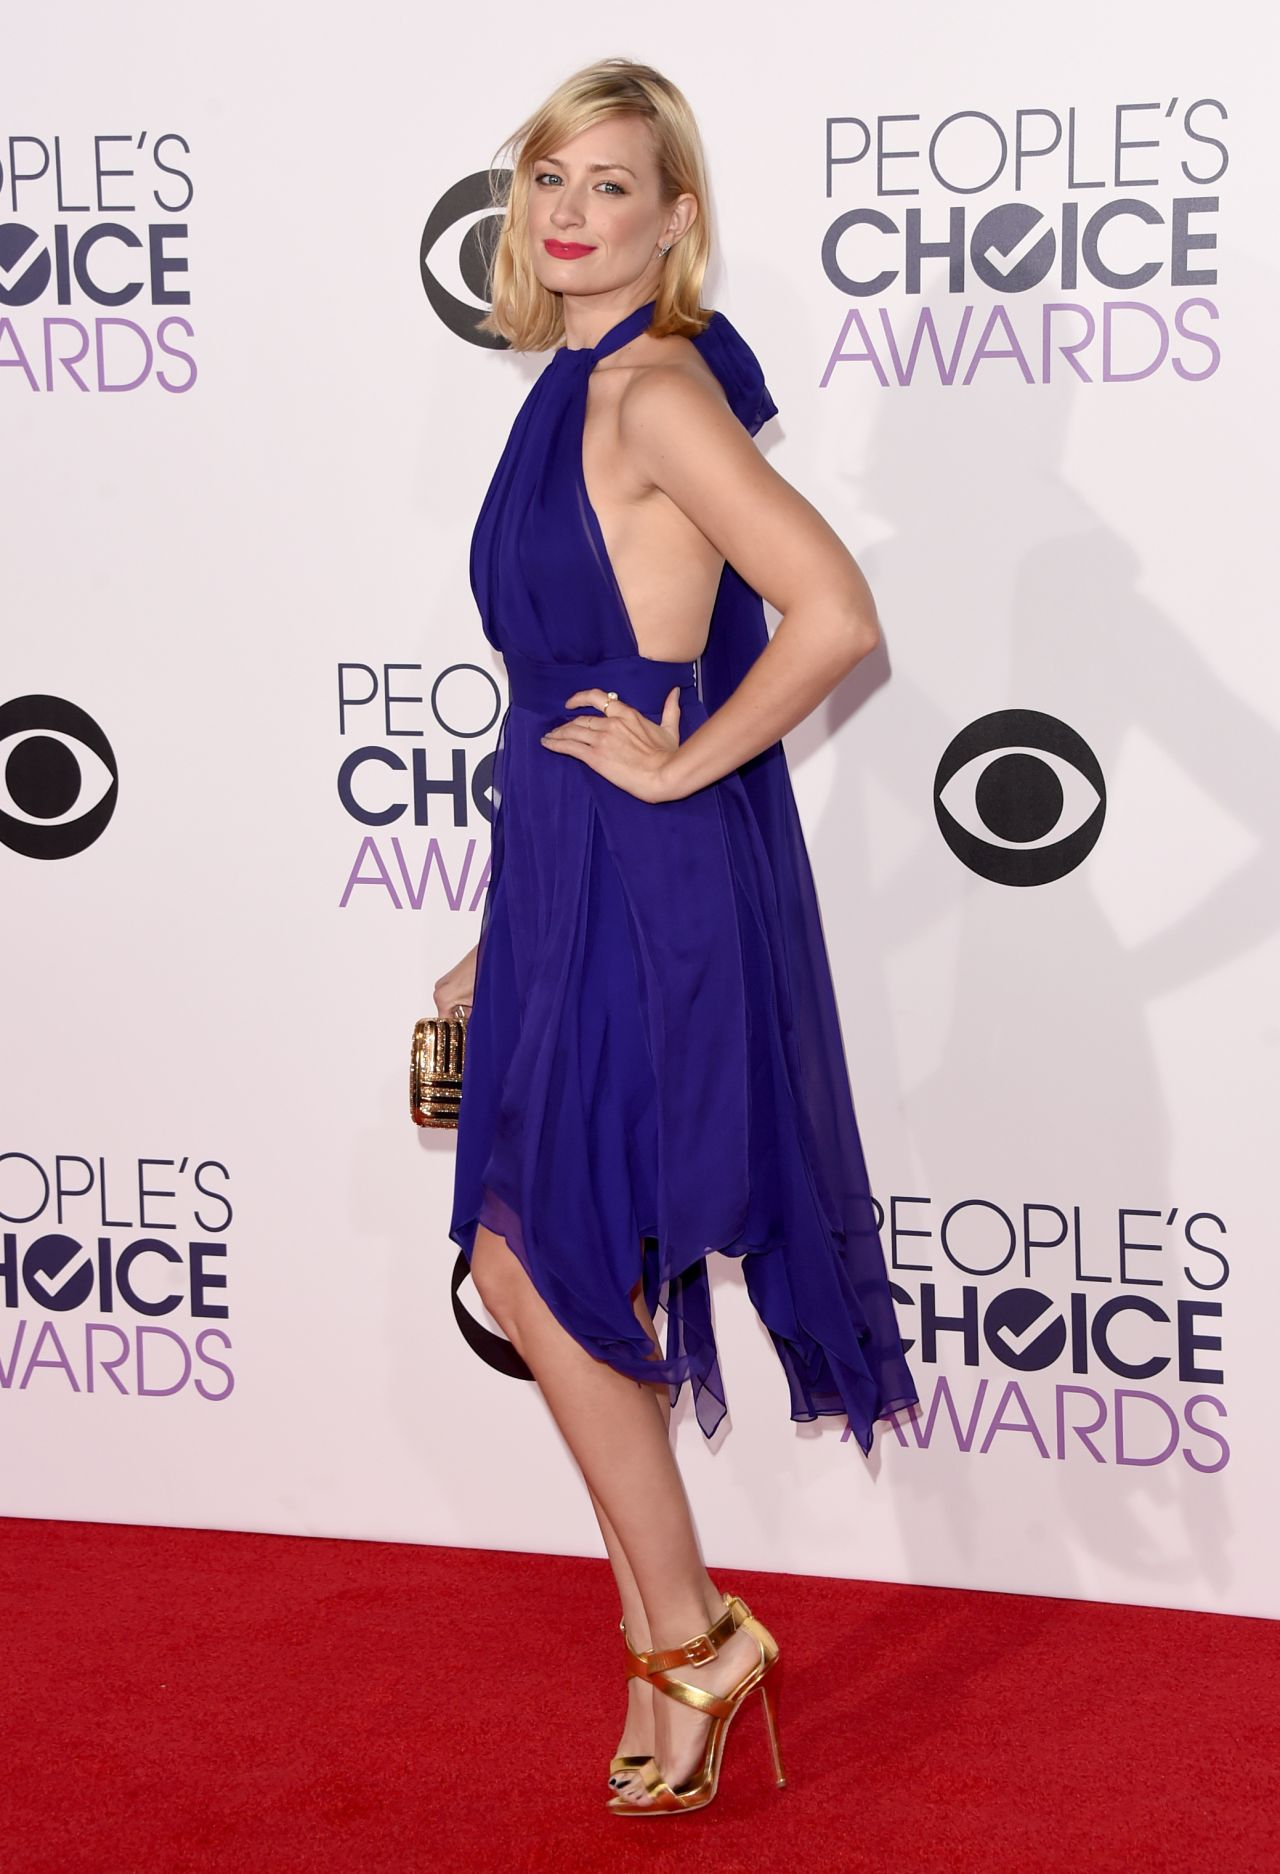 Choice Awards Beth Behrs